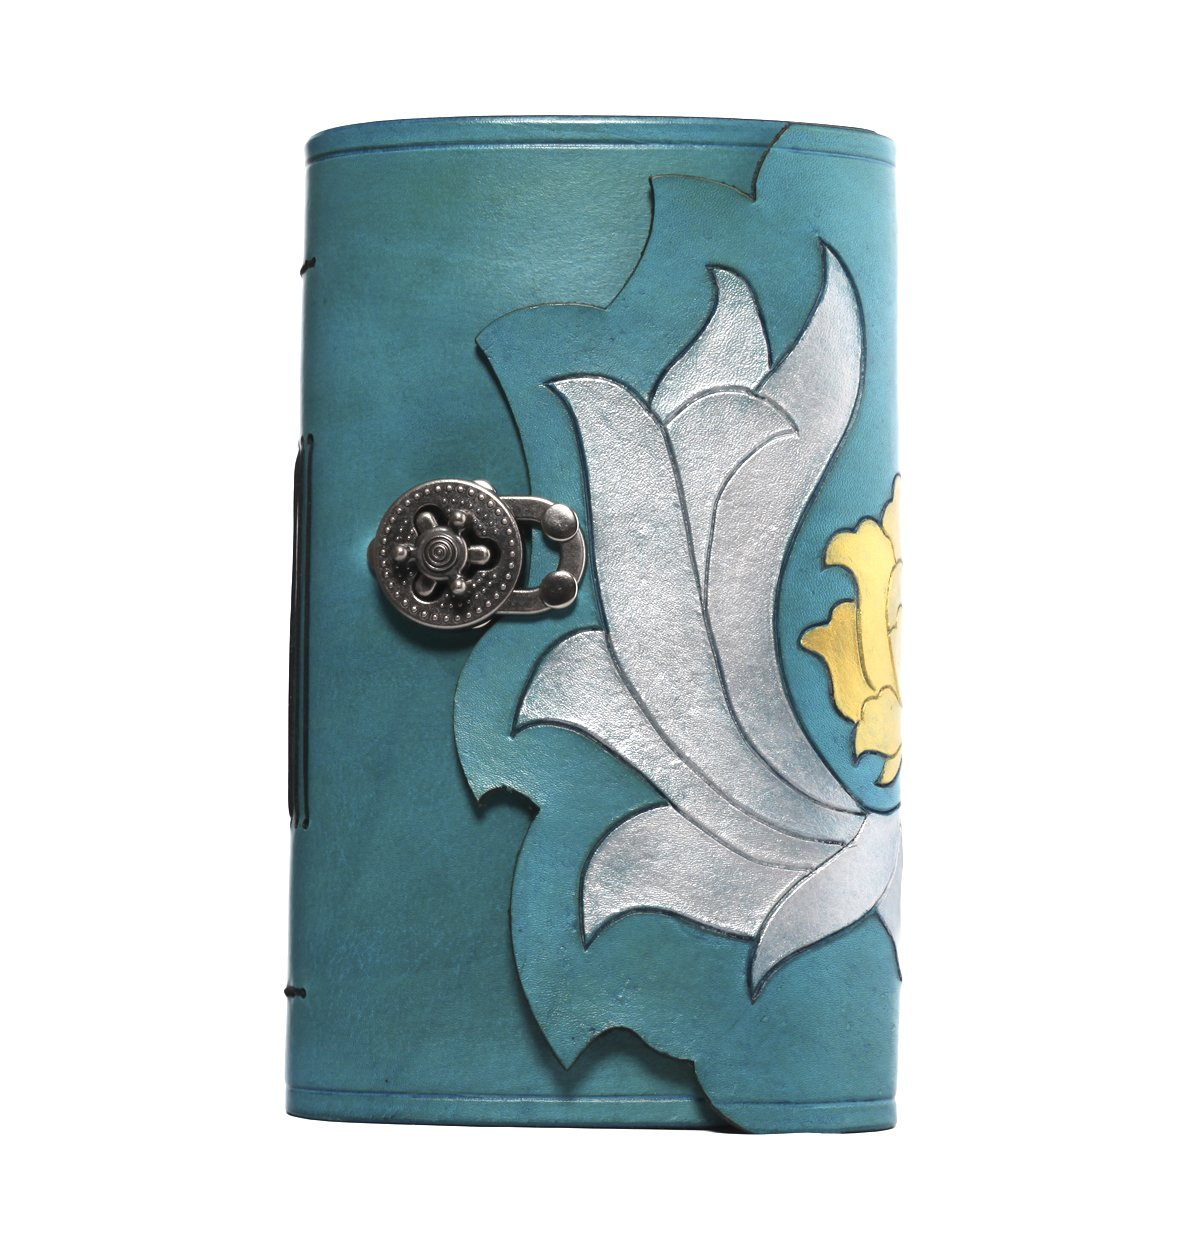 Turquoise lotus leather hand bound journal. Free initials!